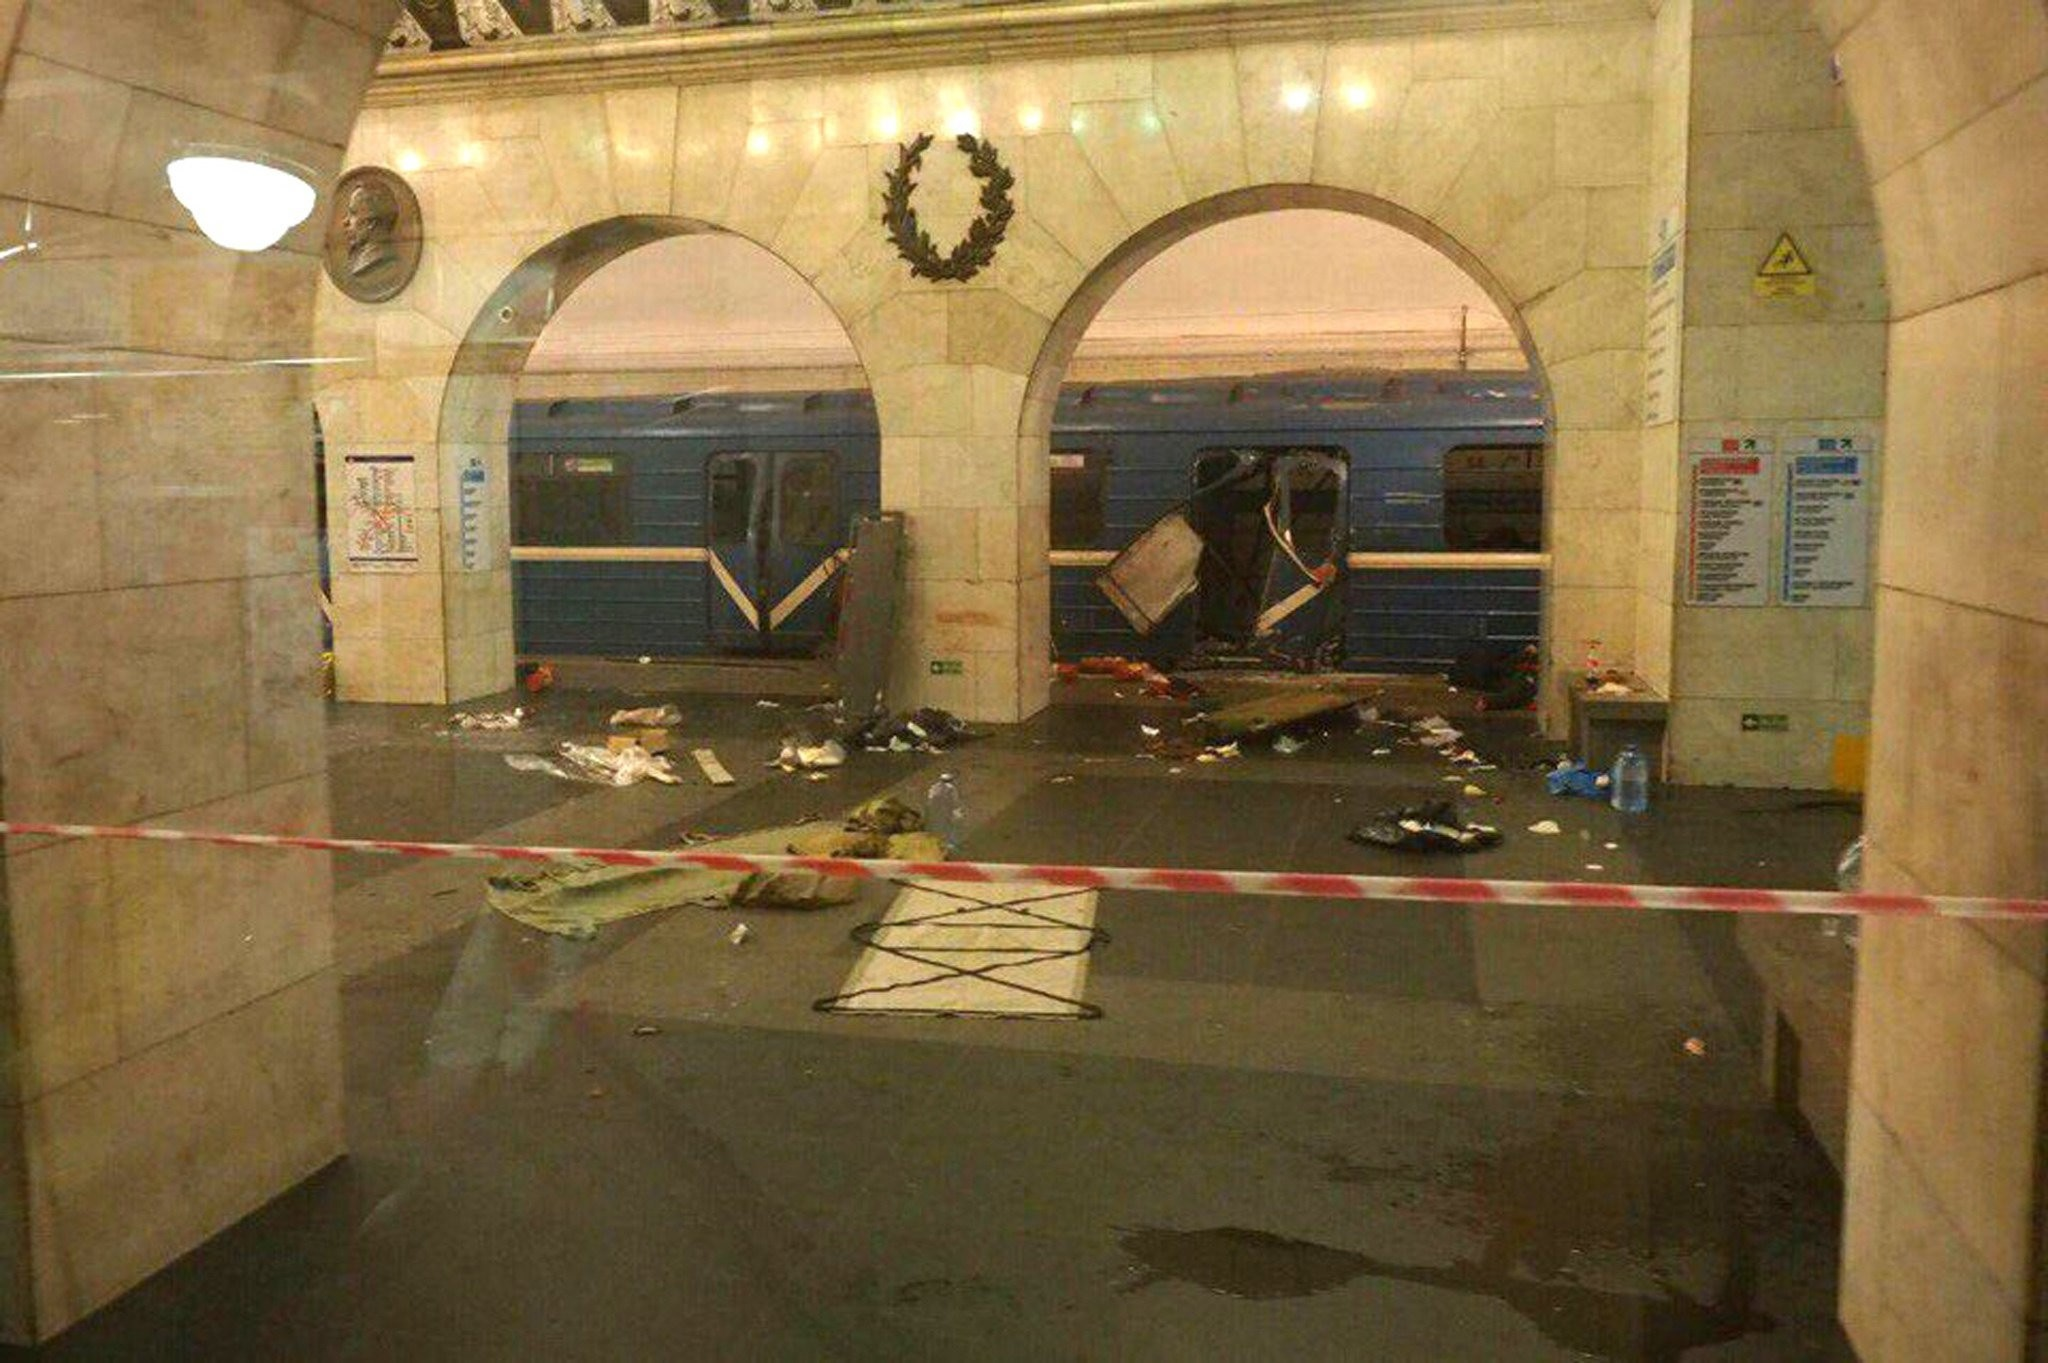 A handout photo made available by megapolisonline.ru via VKontakte (VK) shows a damaged train station shortly after an explosion in a metro of Saint Petersburg, Russia, 03 April 2017. (EPA Photo)